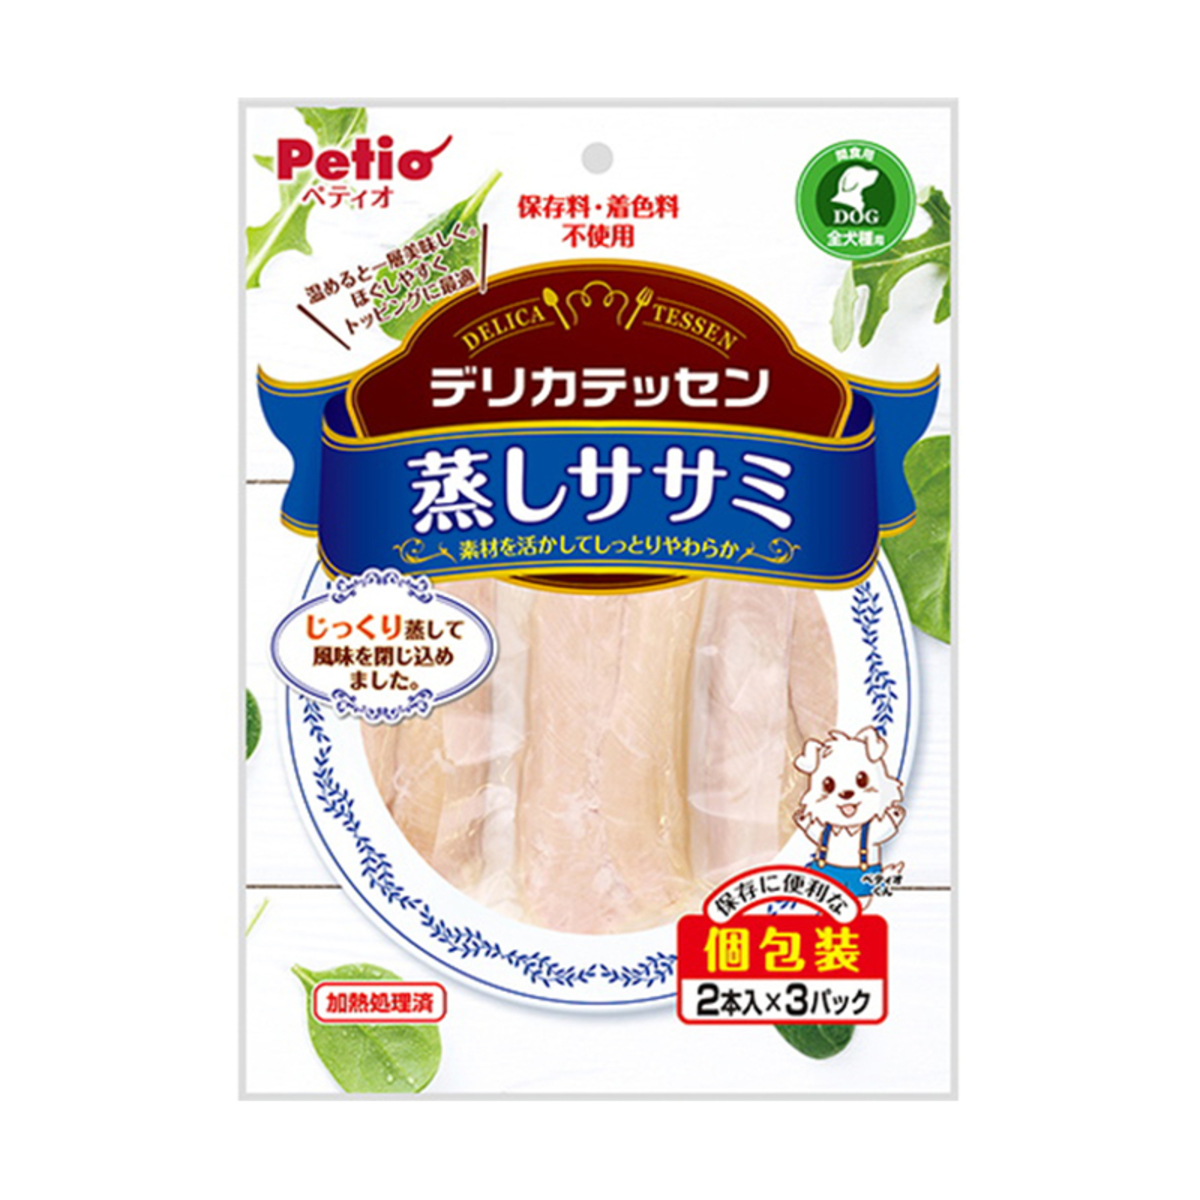 Delicatessen Steamed Chicken Breast  2pX3